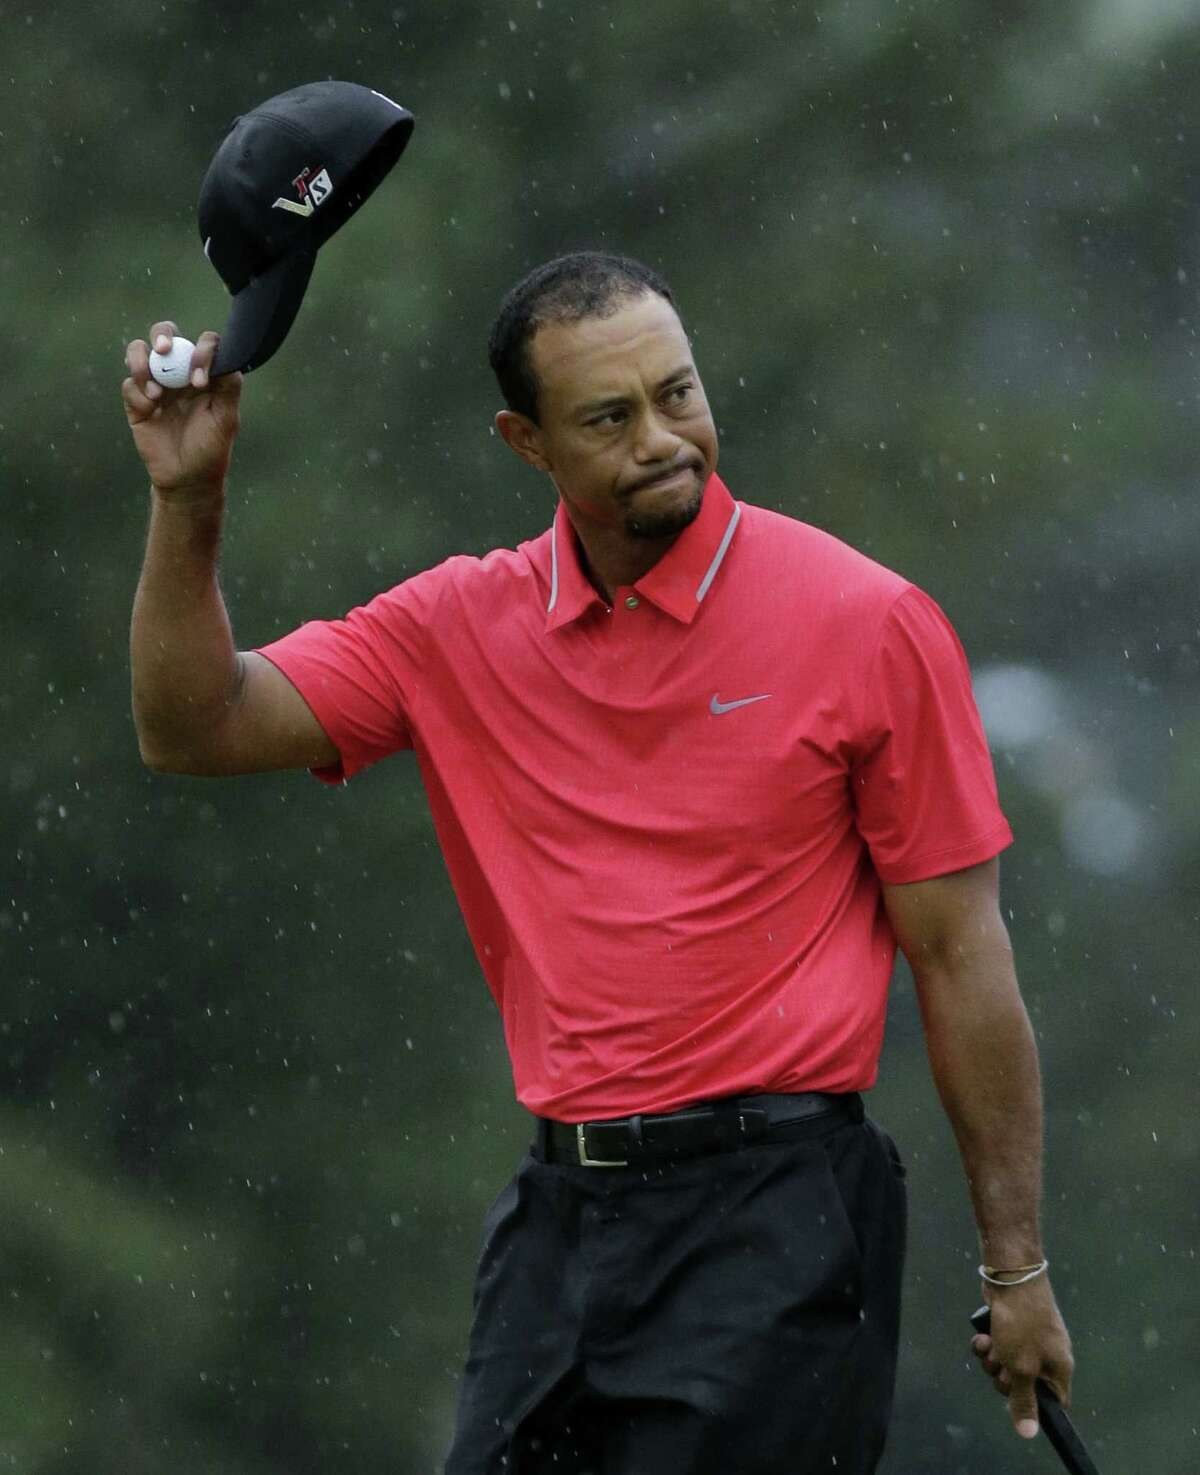 Readers think Tiger Woods should have been disqualified for an illegal drop in the second round of the Masters tournament.